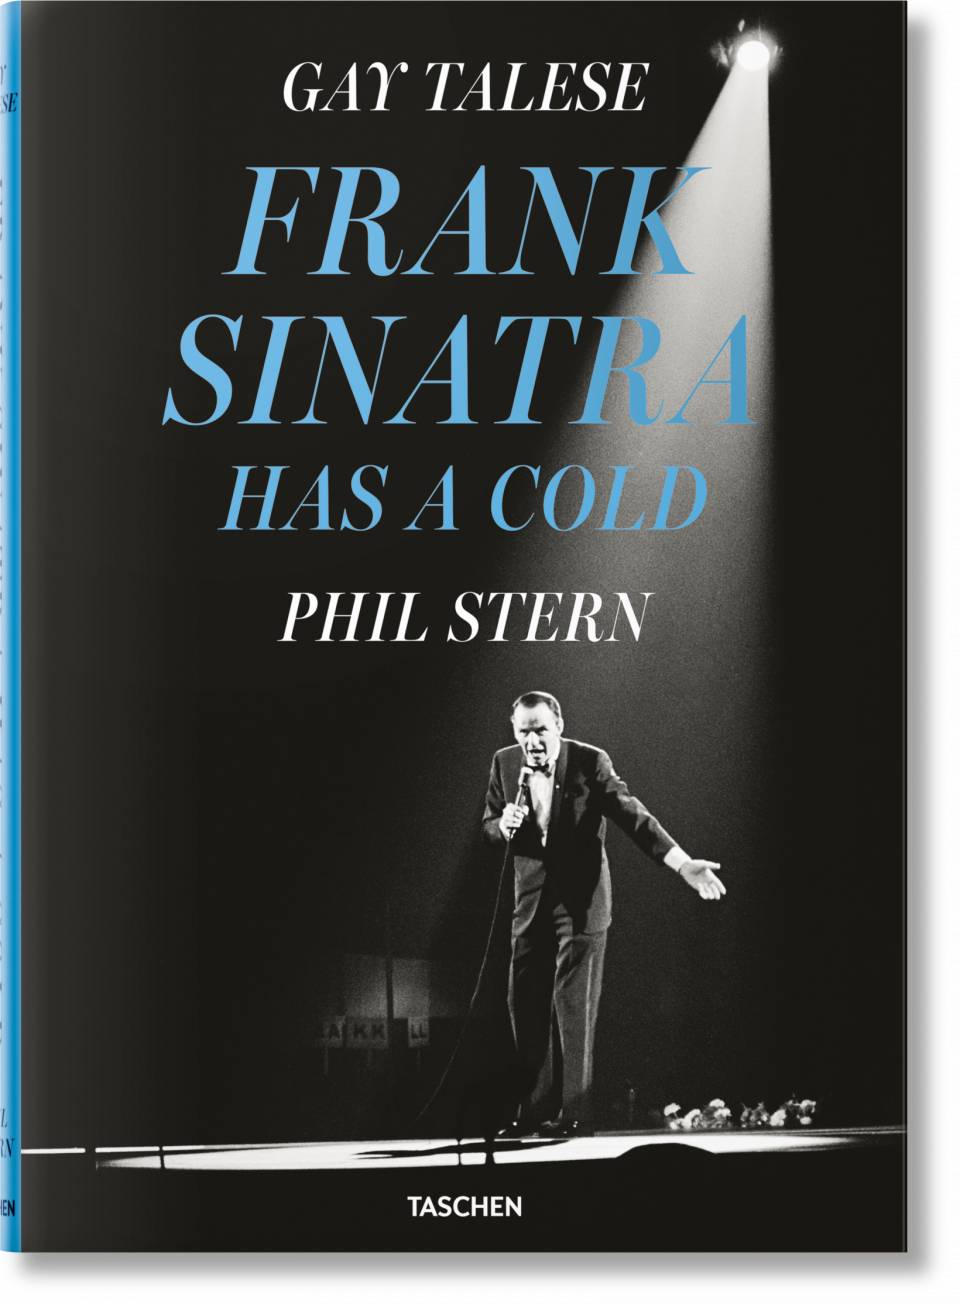 Gay Talese. Phil Stern. Frank Sinatra Has a Cold - image 1